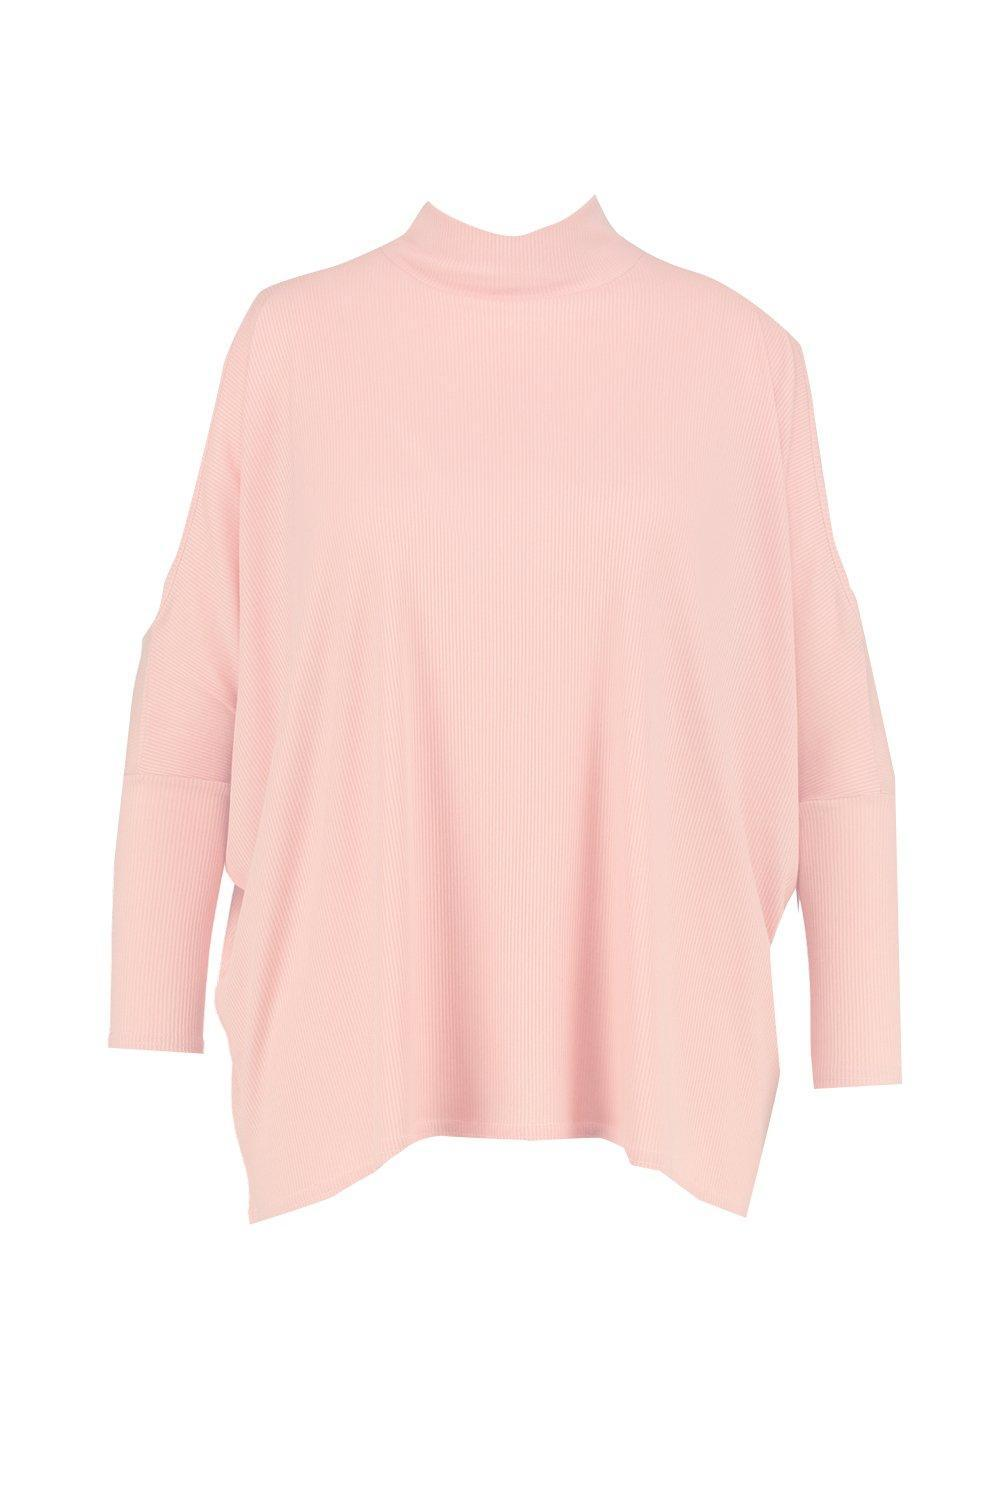 a3013c79ace29 Lyst - Boohoo Plus Alicia High Neck Cold Shoulder Batwing Top in Pink